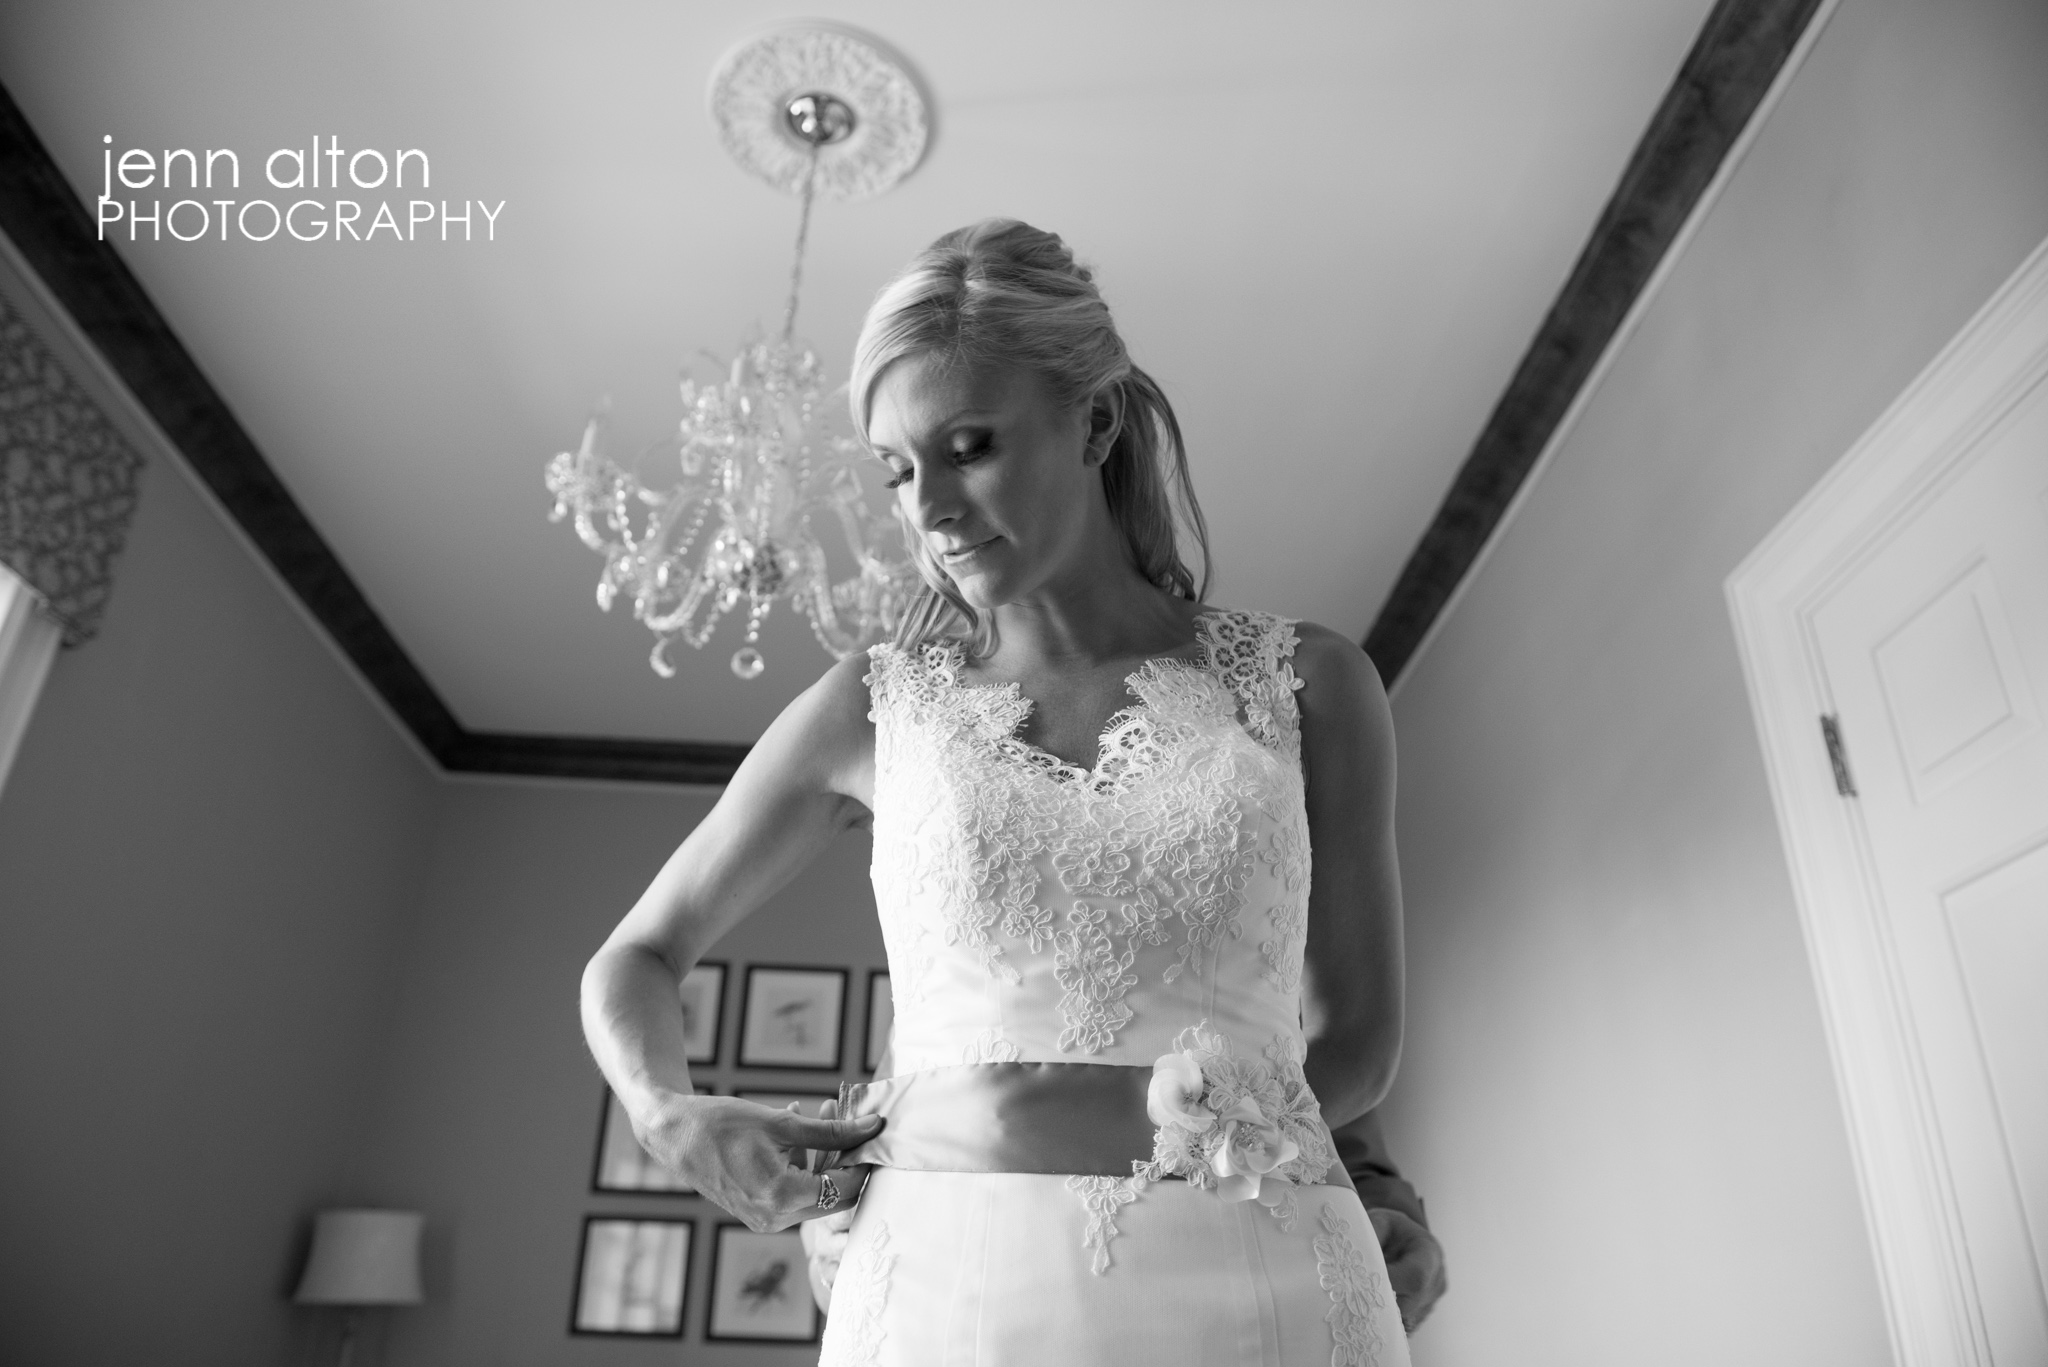 Bride final touches on Dress, Henderson House